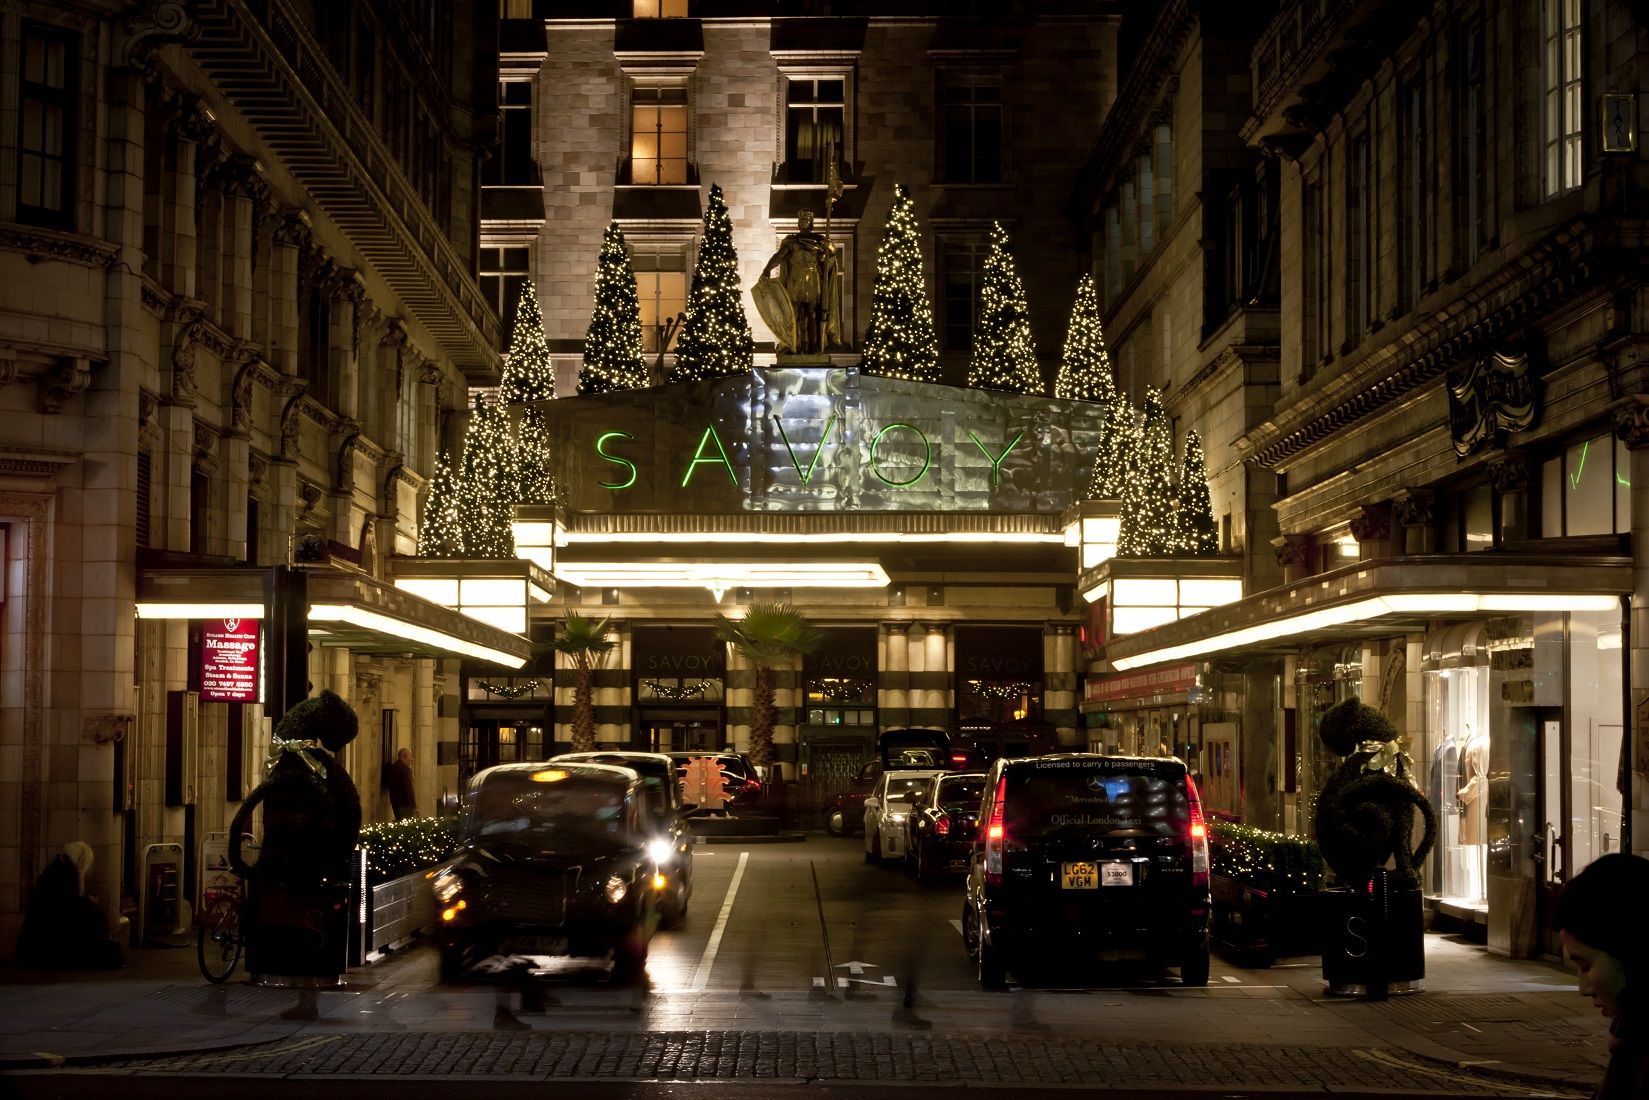 Festive Season at The Savoy in London